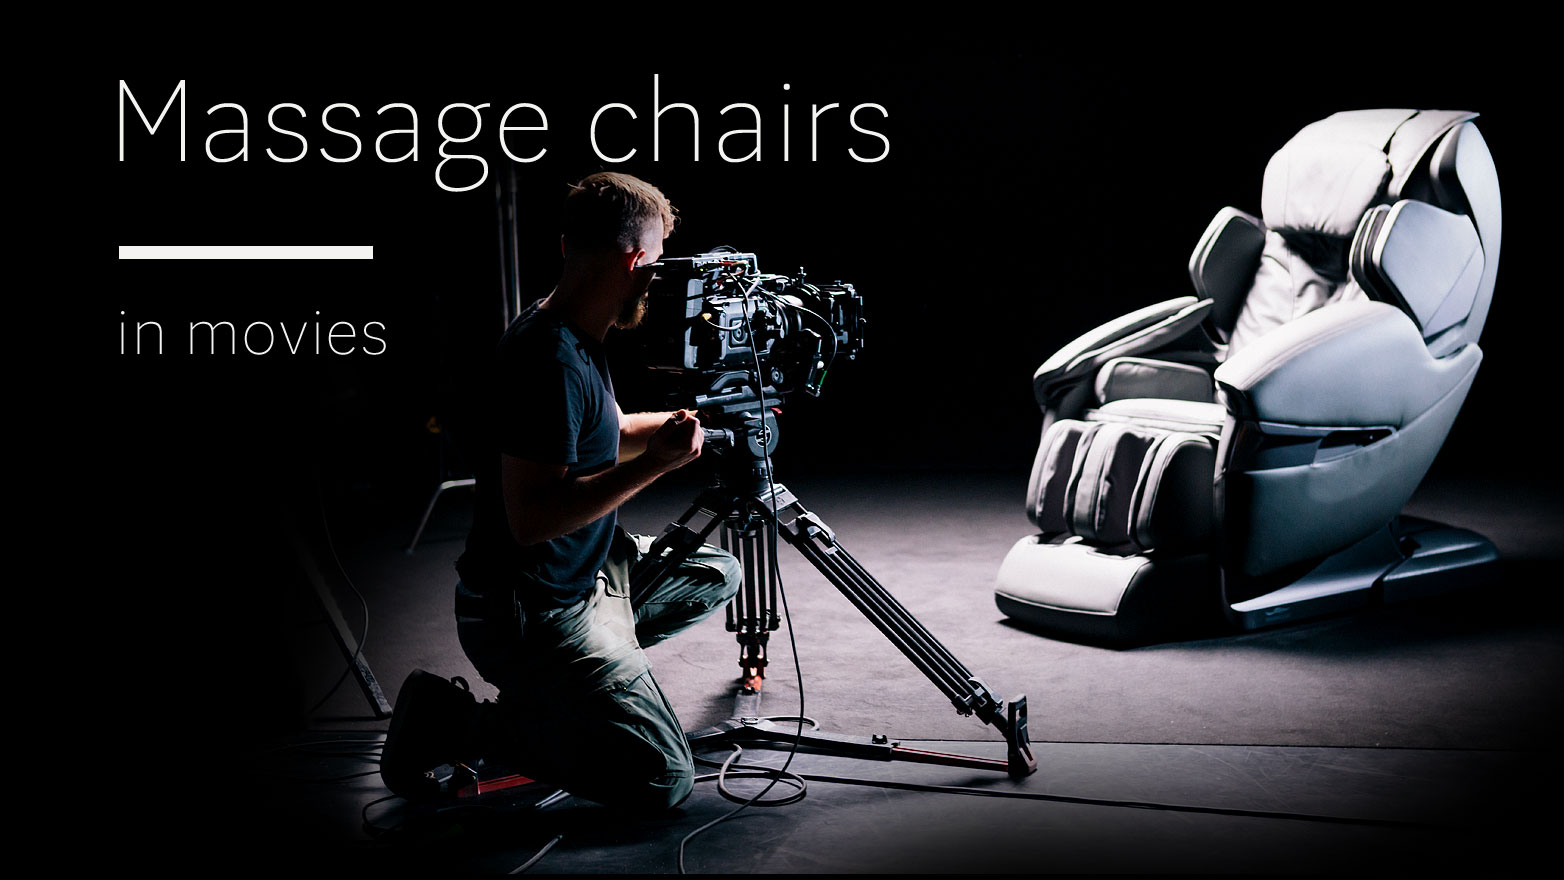 Massage chairs in movies